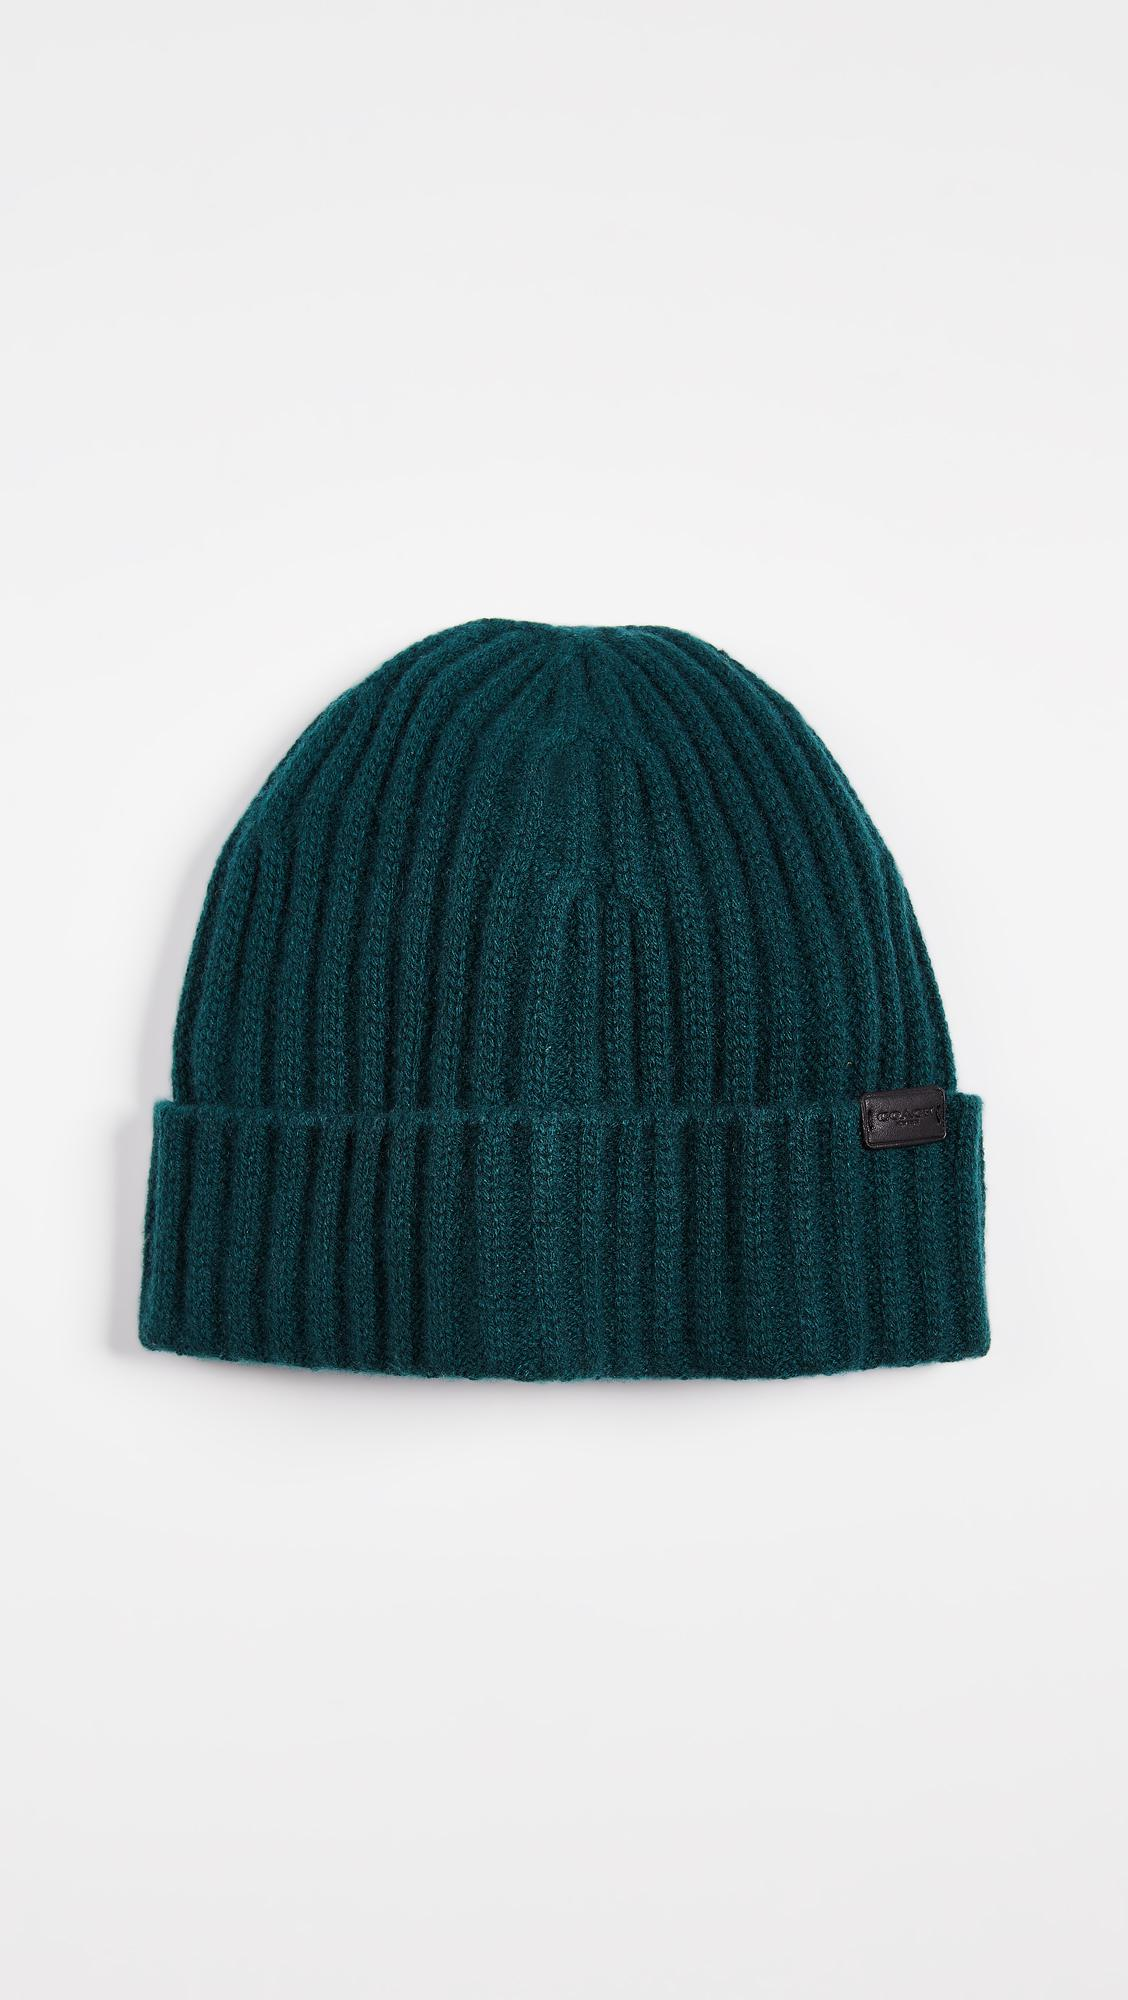 Lyst - Coach Cashmere Beanie in Green for Men dc9afcaa6c86